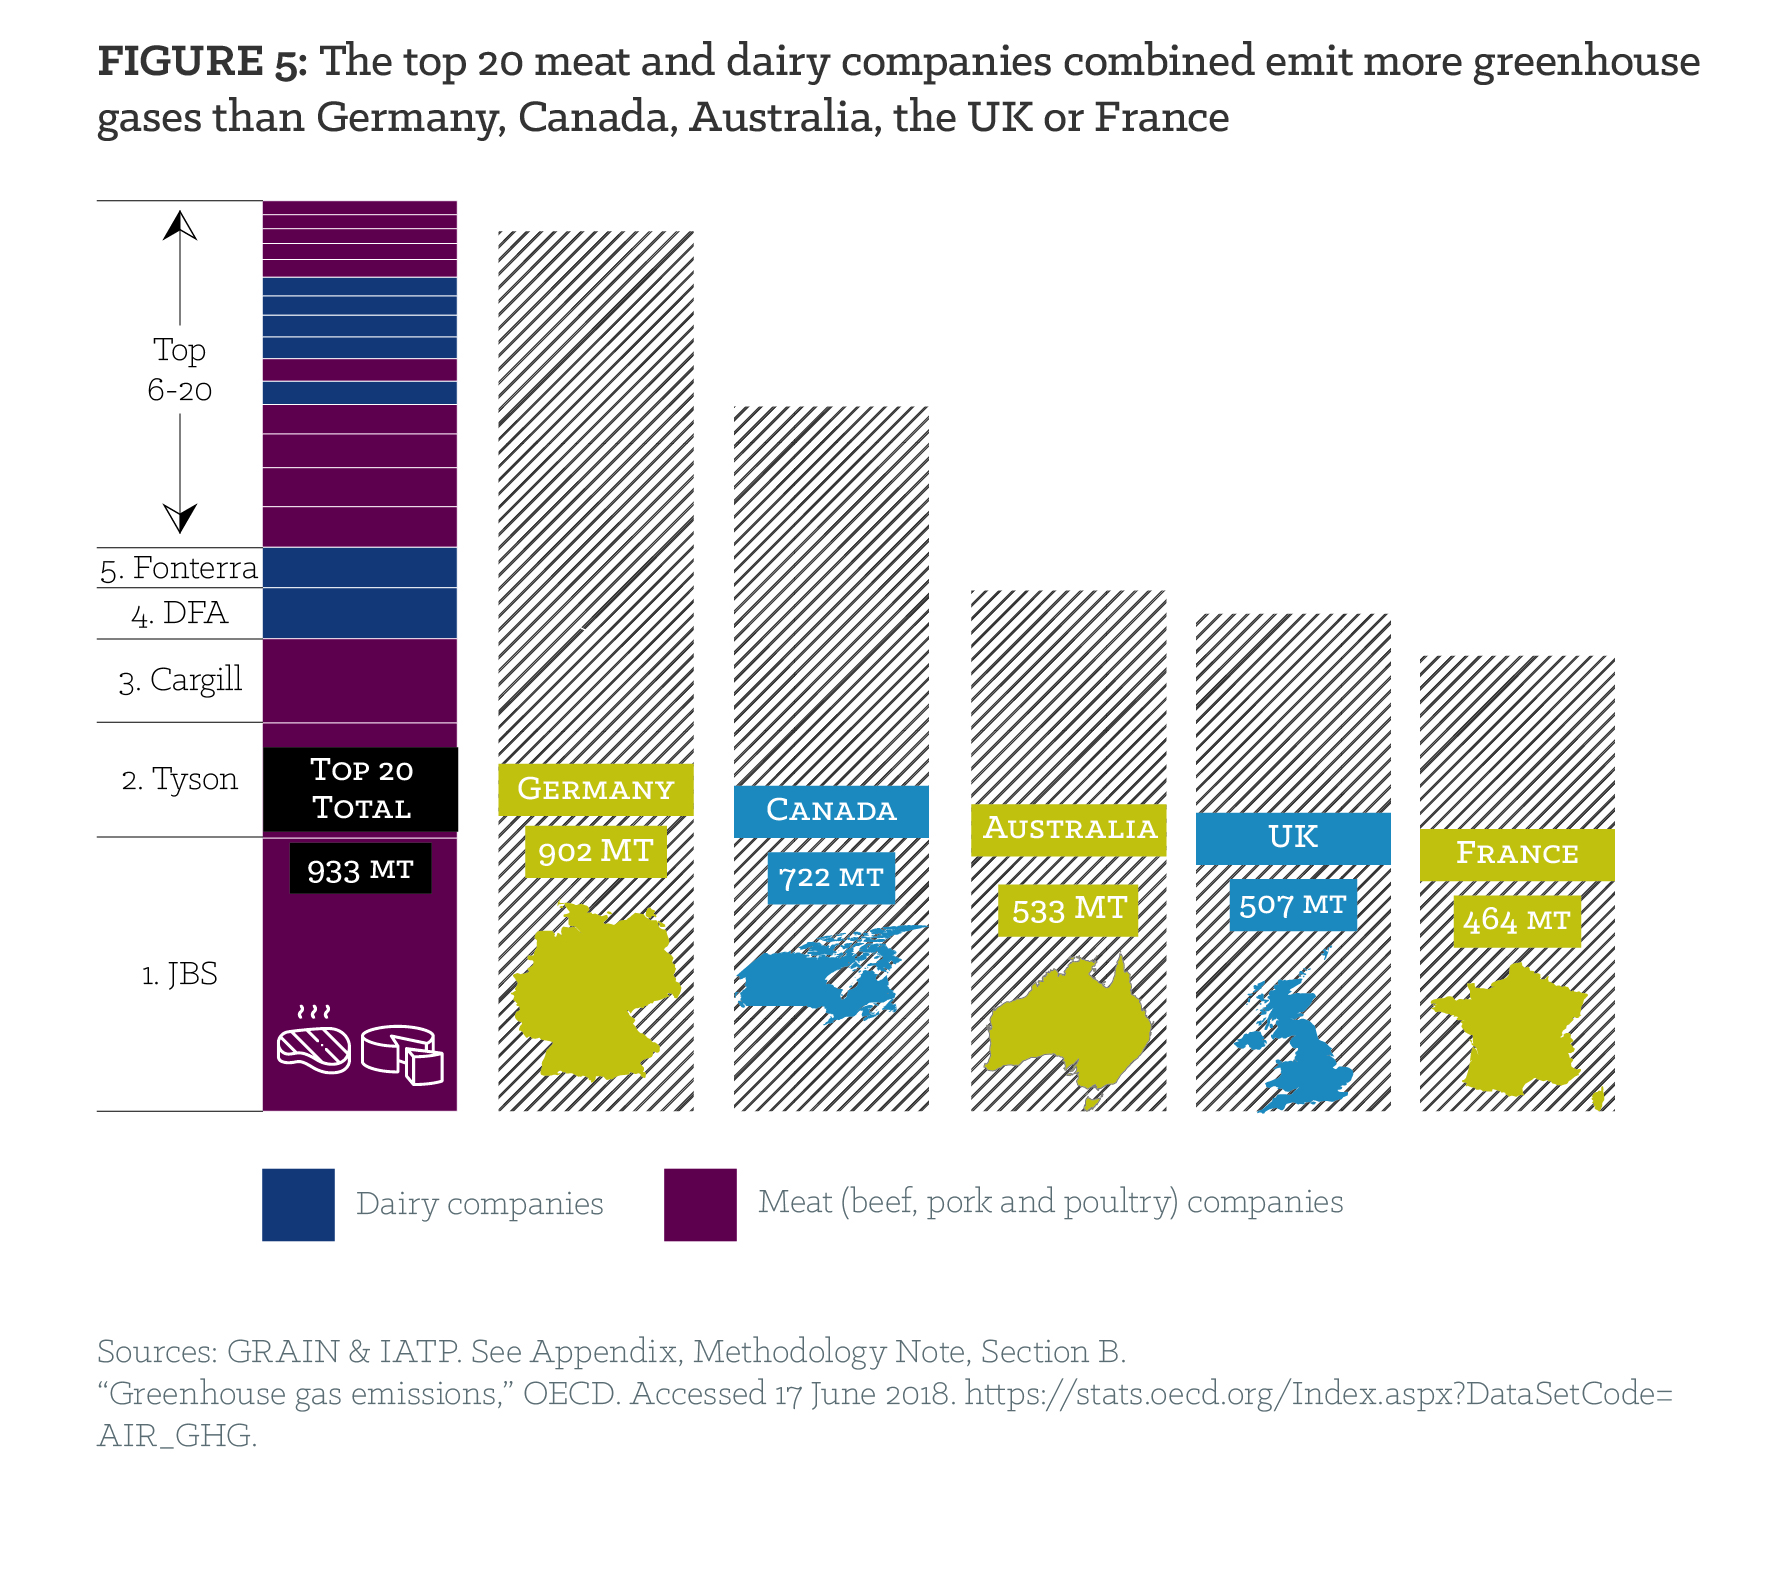 Figure 5: The top 20 meat and dairy companies combined emit more greenhouse gases than Germany, Canada, Australia, the UK or France